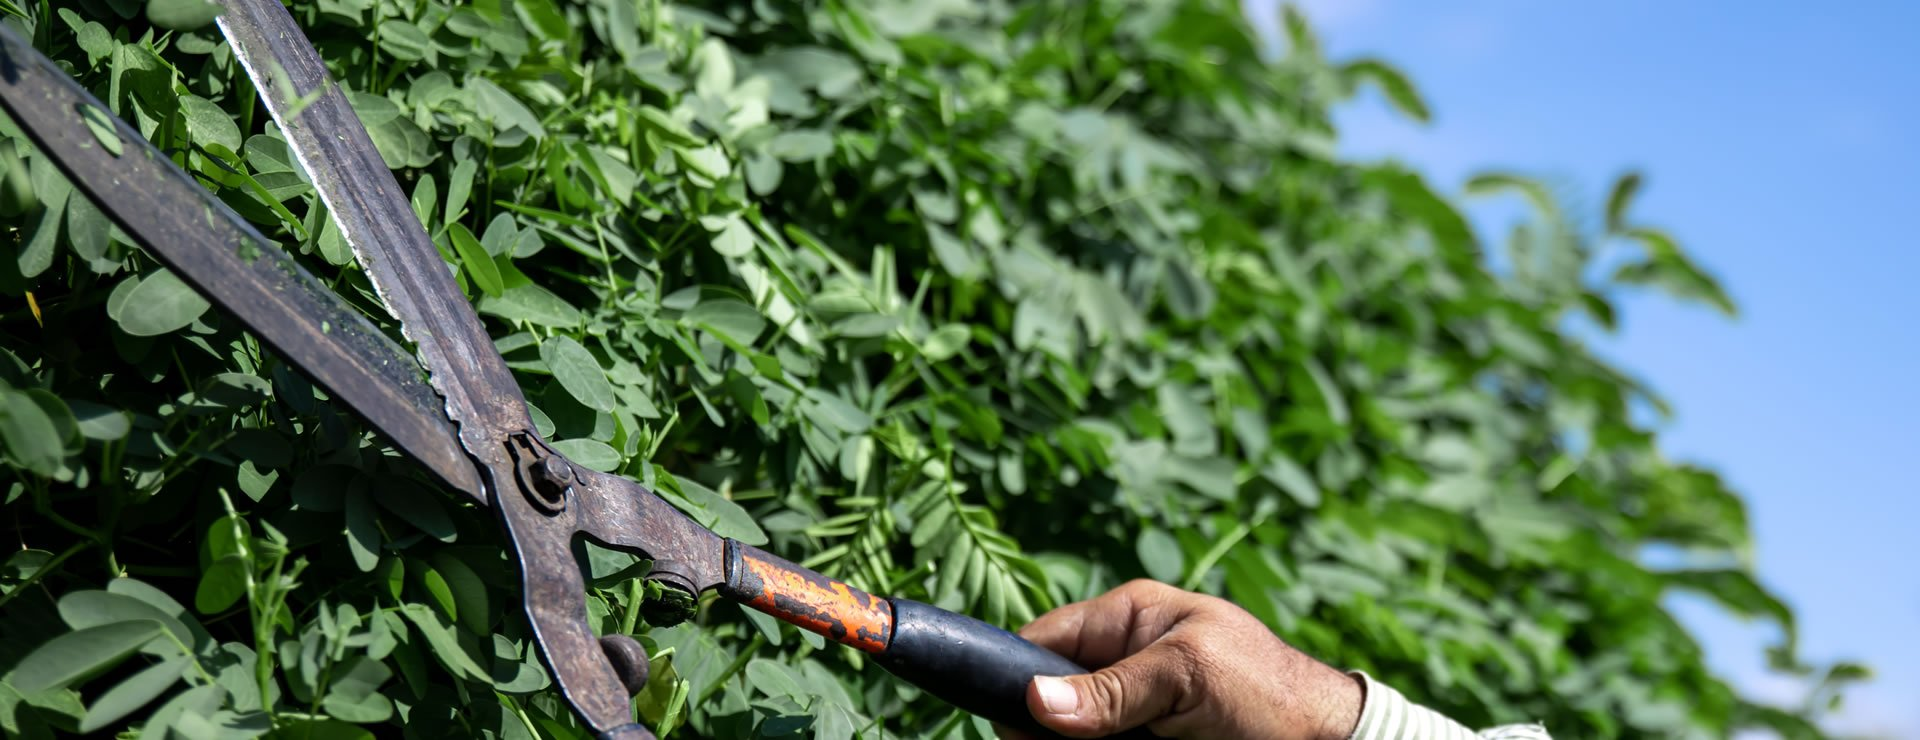 How to Maintain Hedges: WHEN TO CUT OR TRIM HEDGES